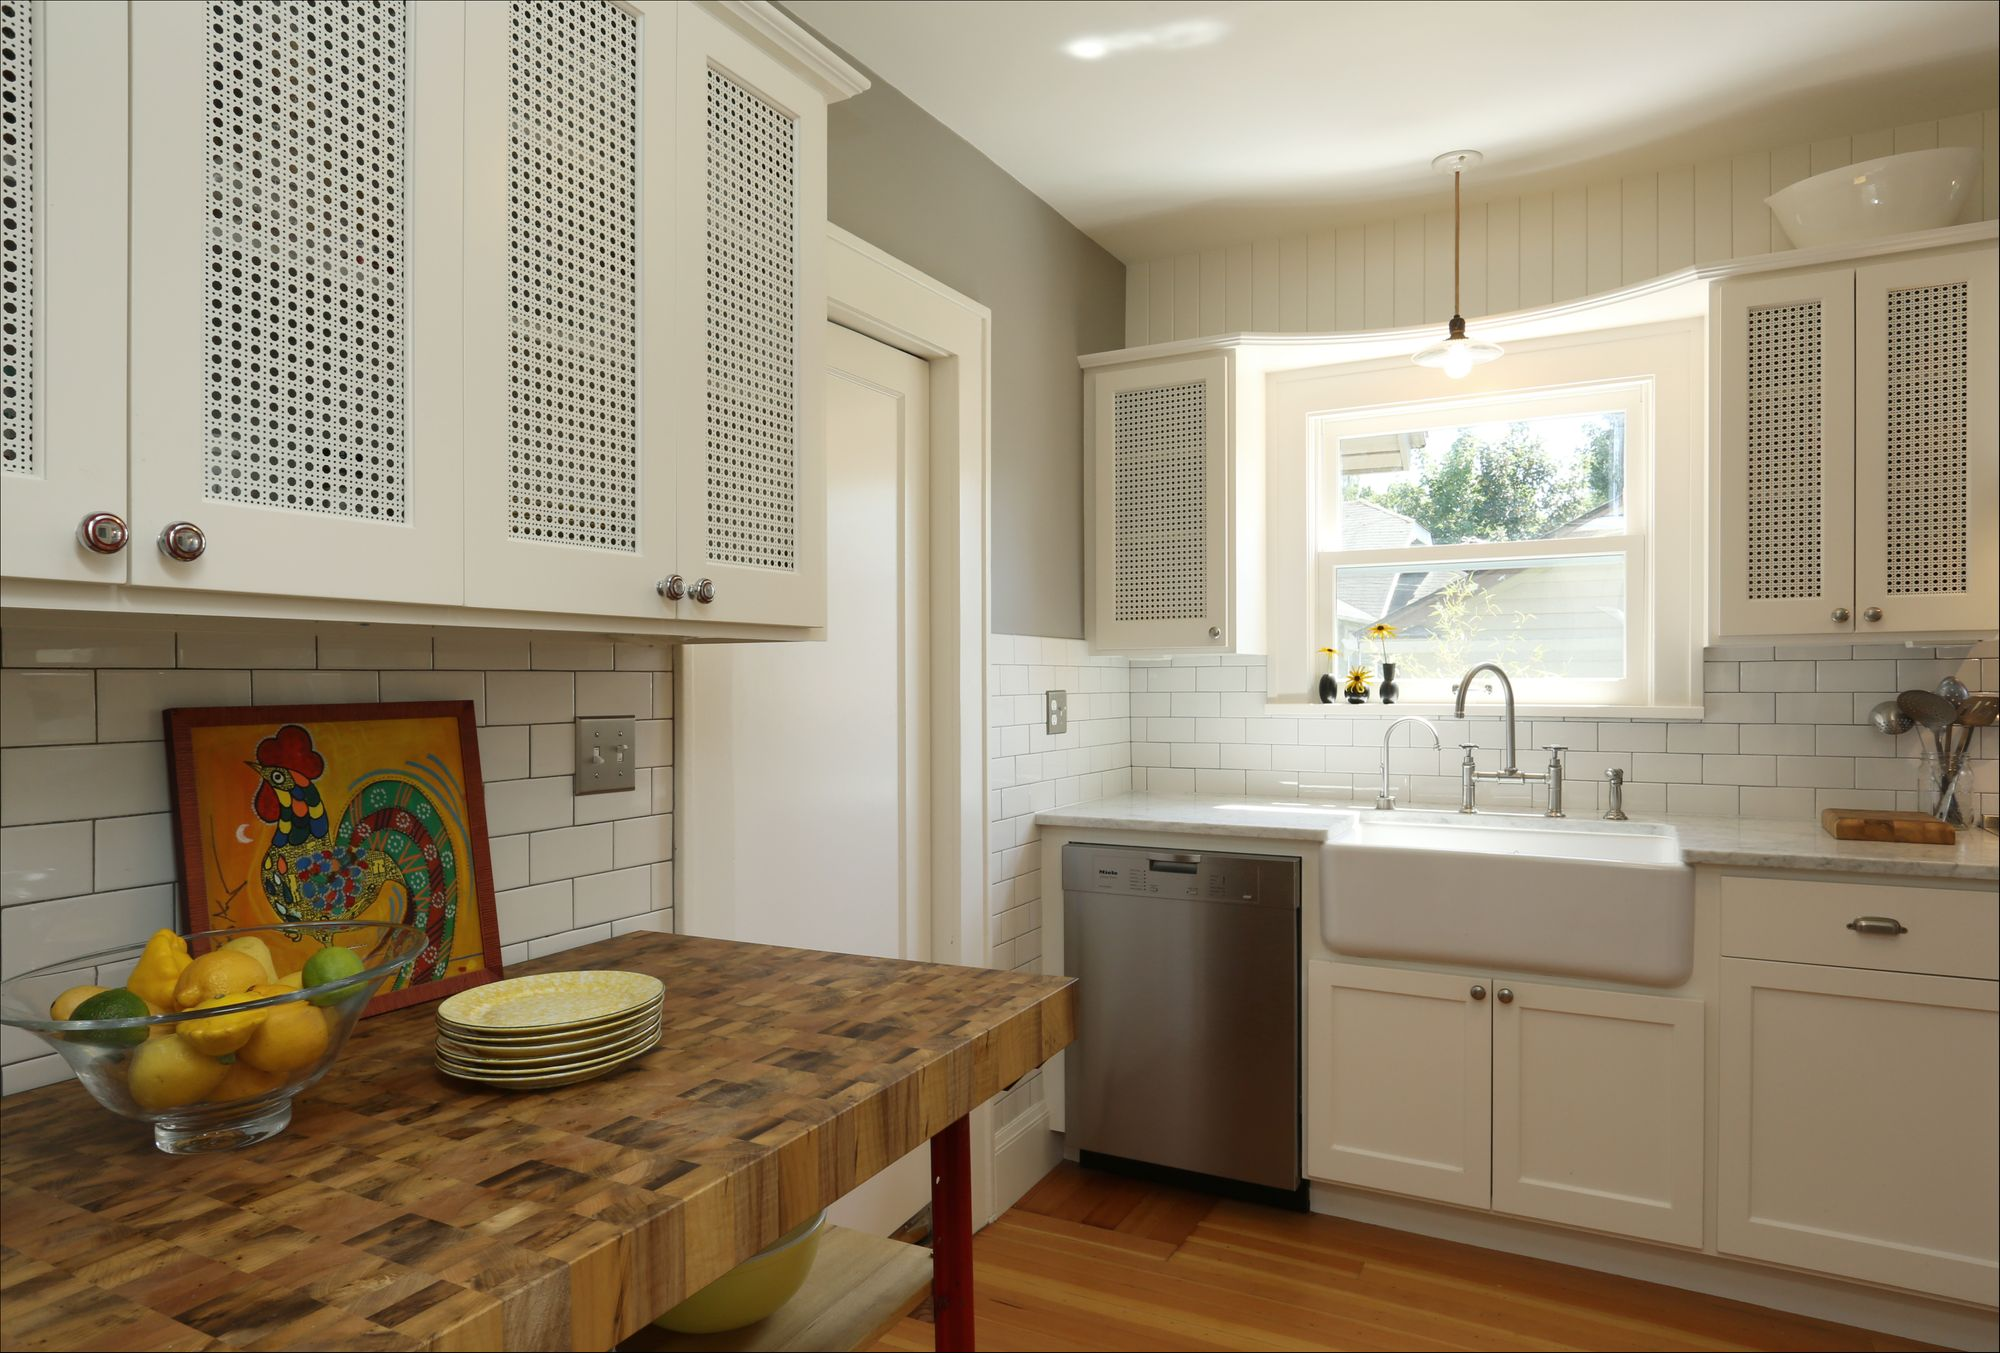 Designer Perforated metal infill panels used to create semi-open kitchen cabinets